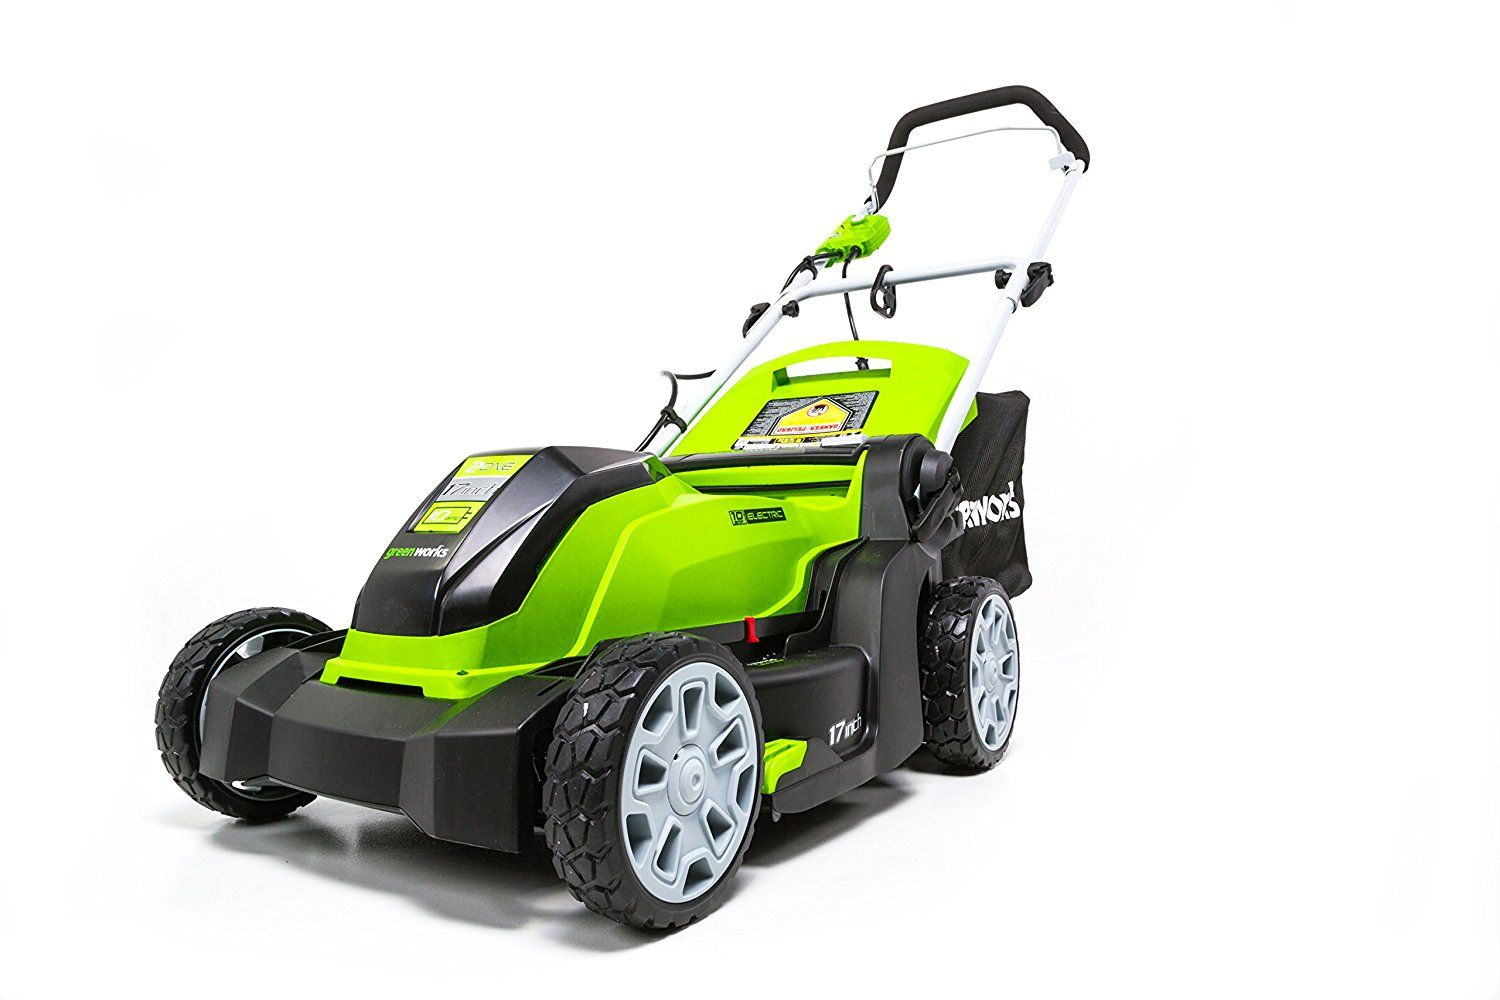 Best Lawn Tractor 2021 best push lawn mower 2019 riding lawn mower best lawn mower push